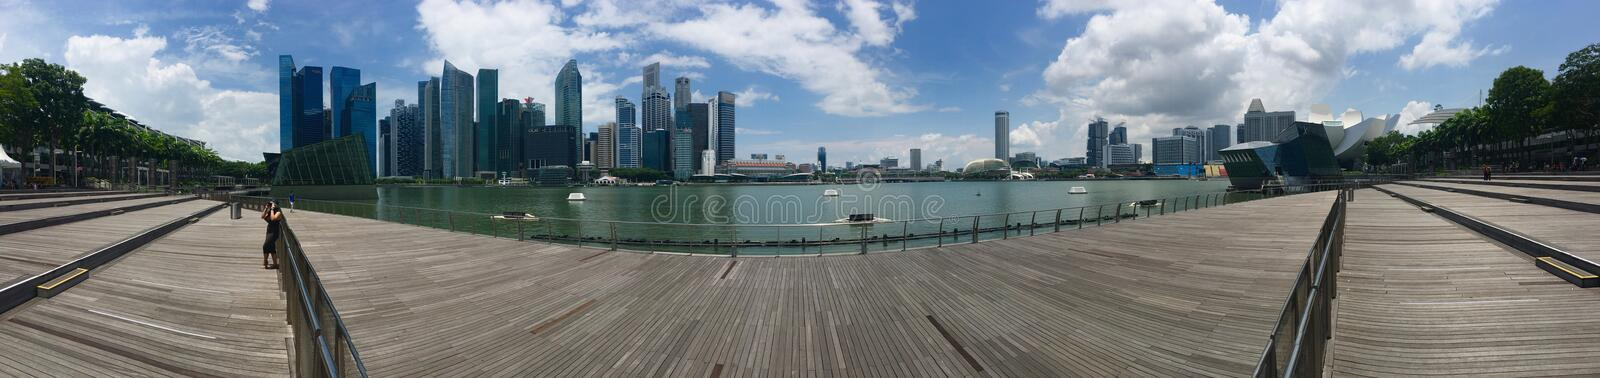 Panoramic view of Singapore Marina Band Sands area. Wooden plank platform overlooking the bay, green trees on both sides and skyscraper on a sunny blue sky day royalty free stock photos